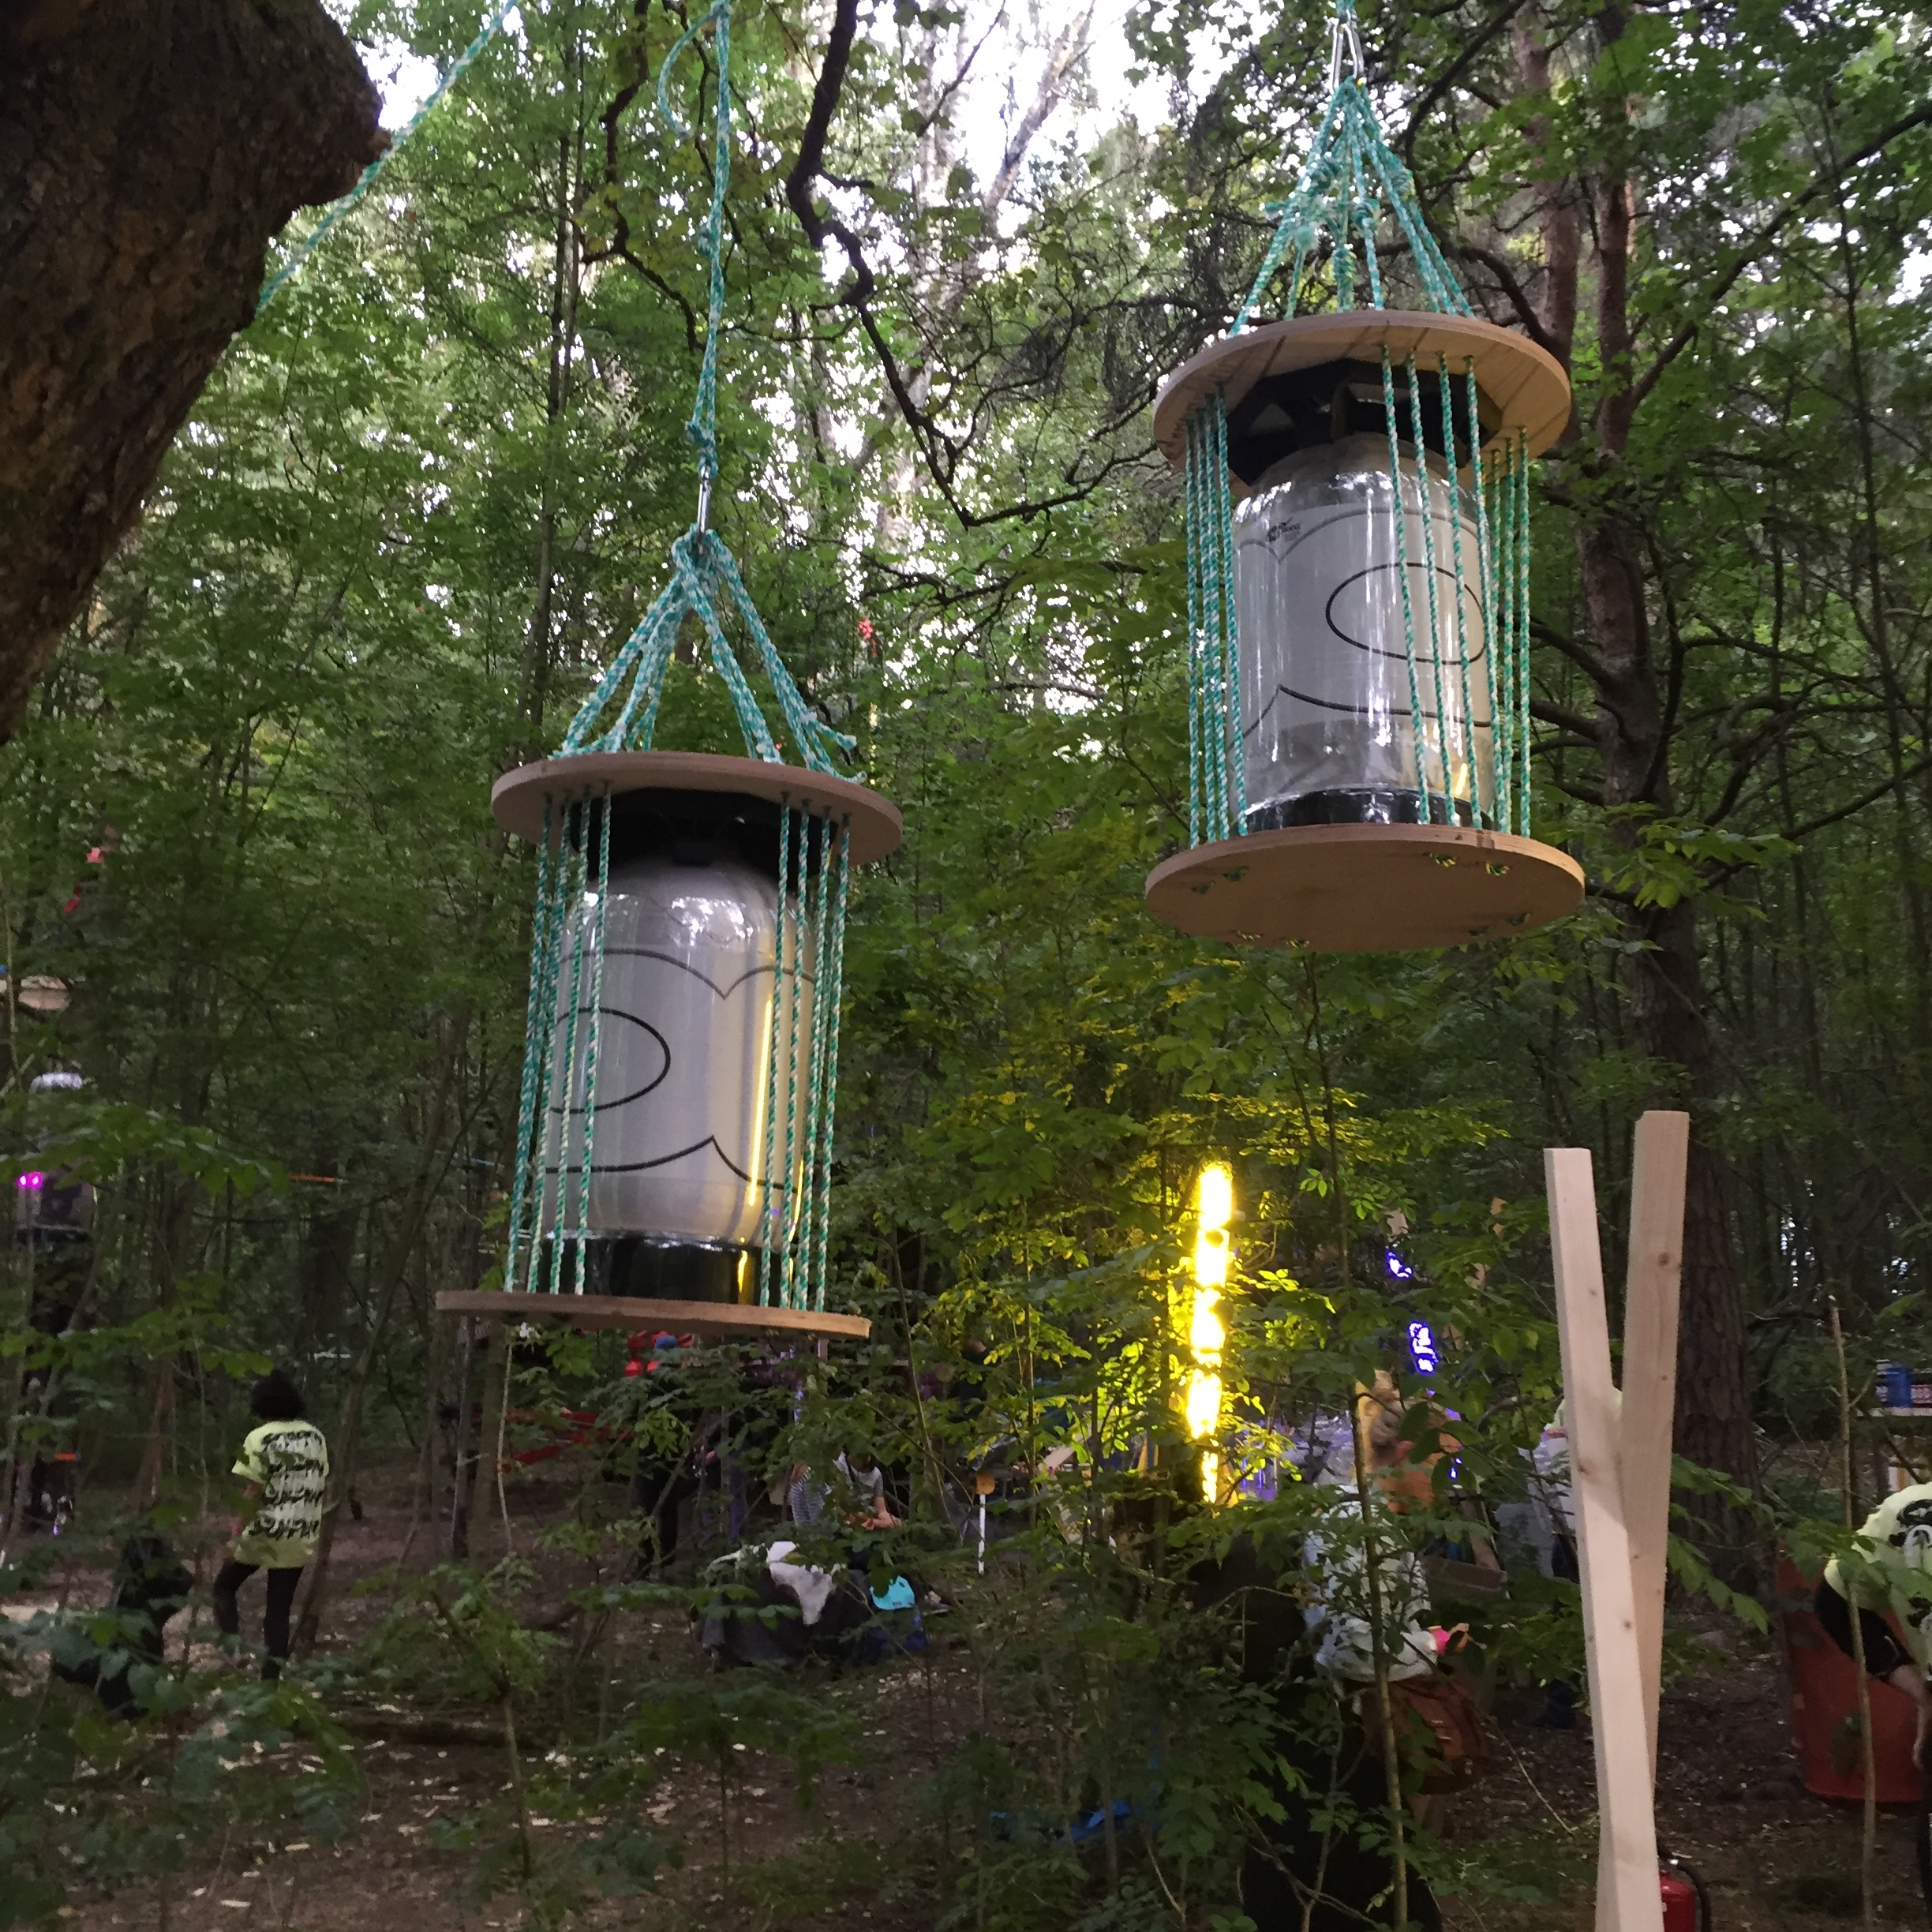 """A RICE BEER WITH BIRCH SAP AND CHAGA MADE FOR PERFORMANCE FESTIVAL """"SOPPEN"""". KEGS WERE HUNG IN TREES. (2016)"""